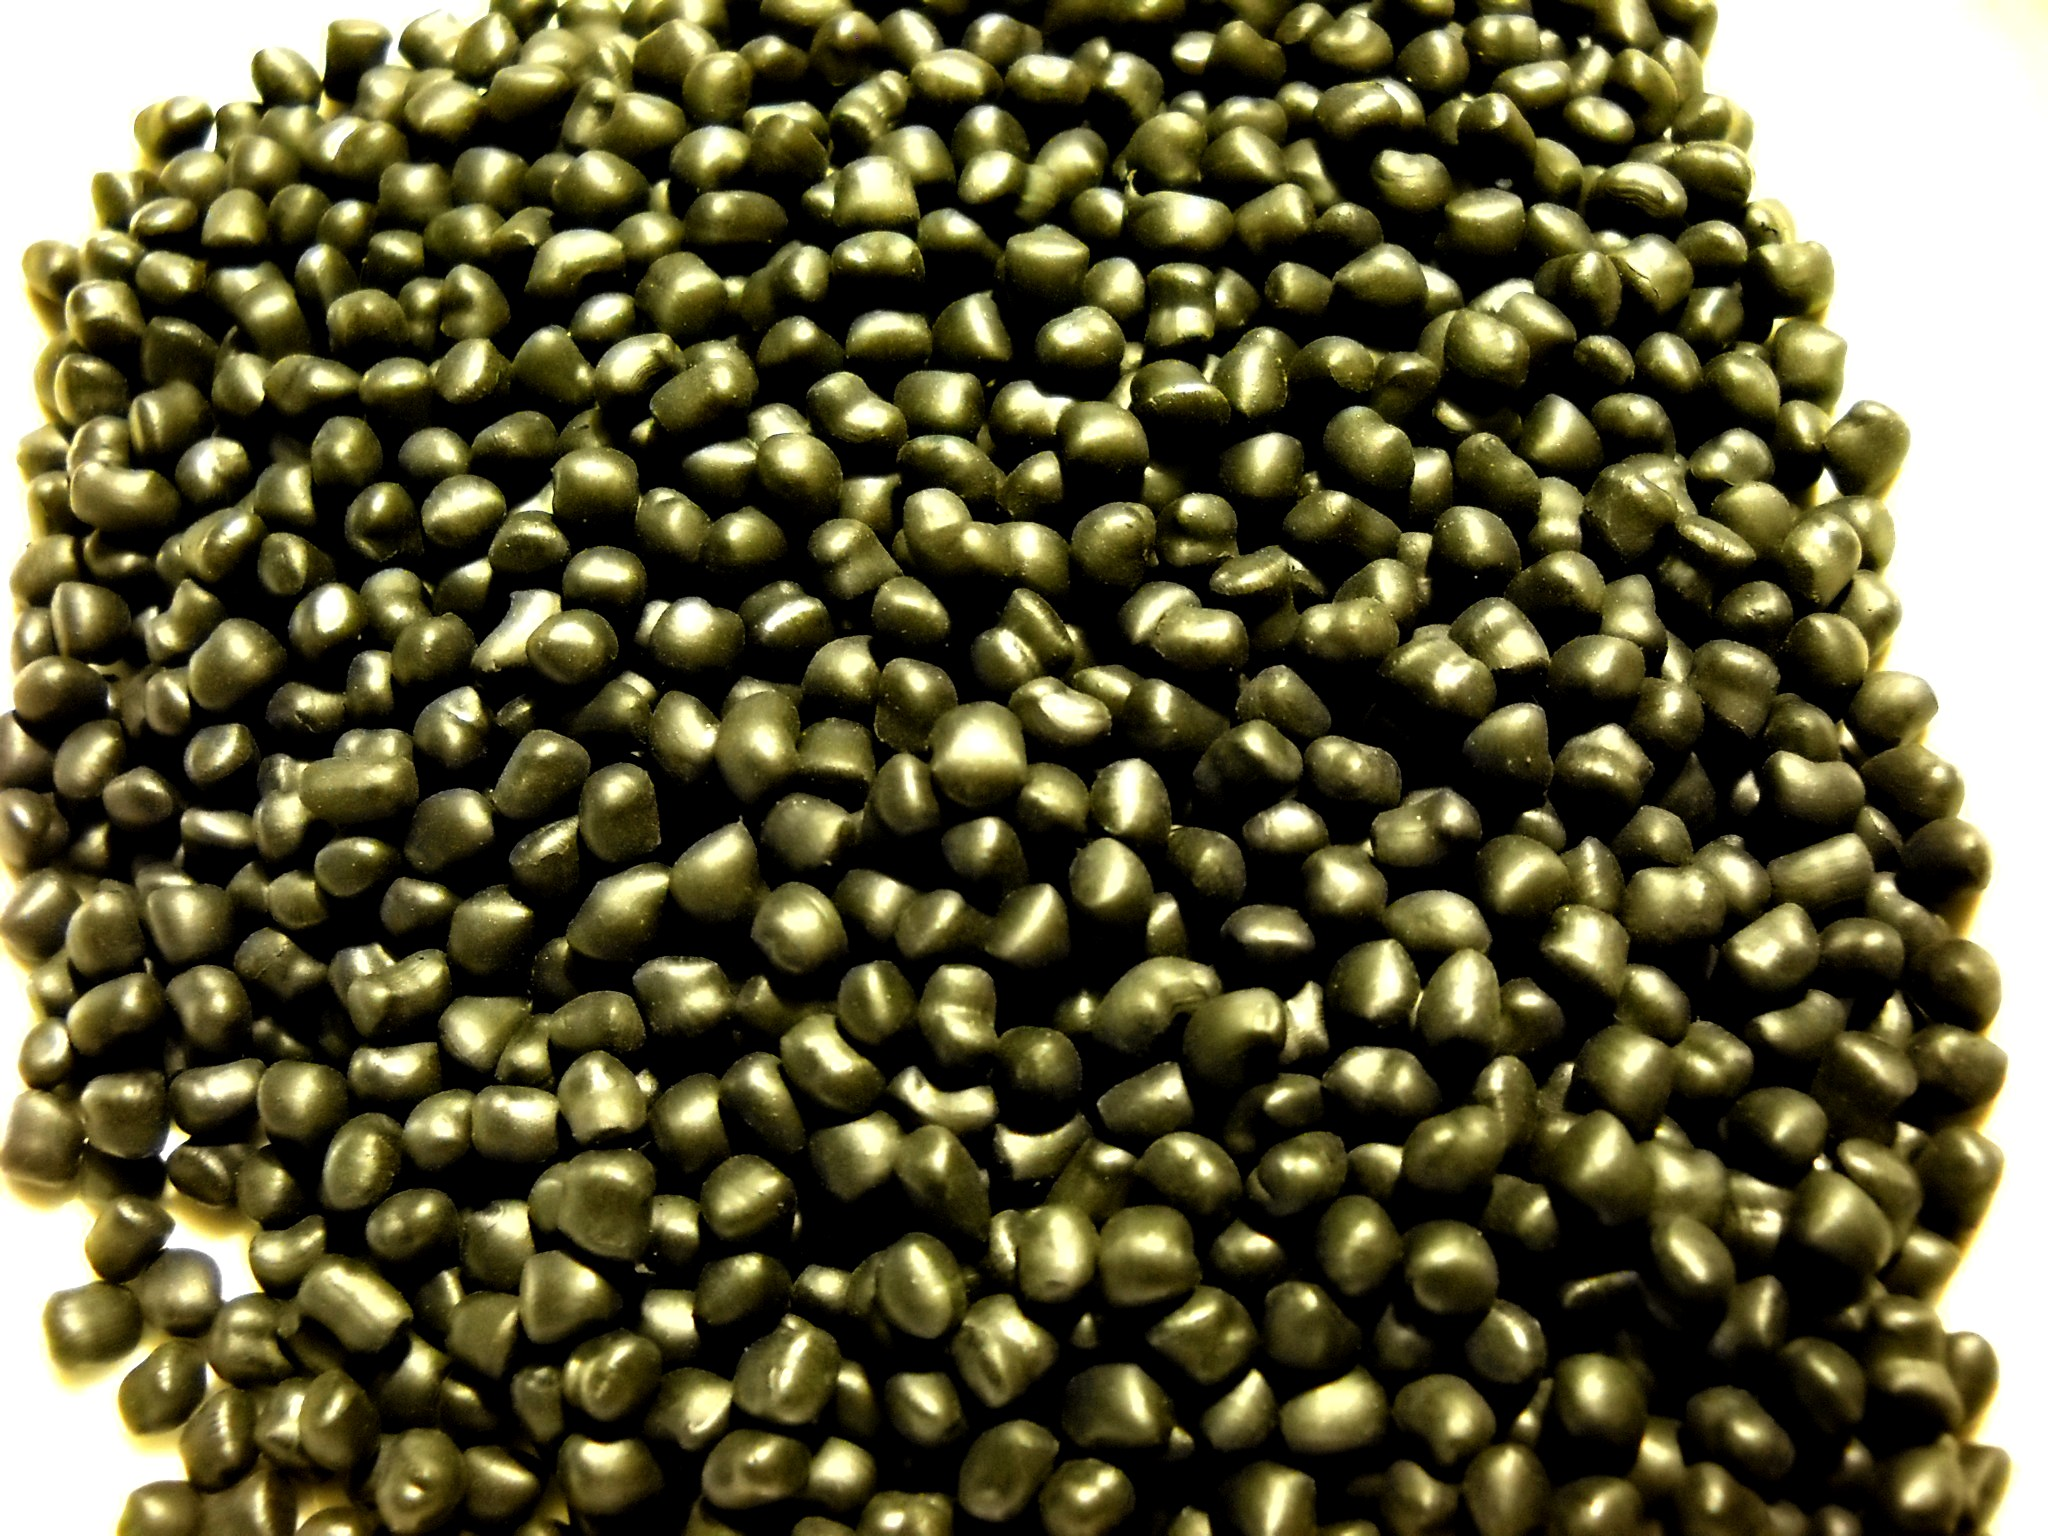 Black TPE Pellets